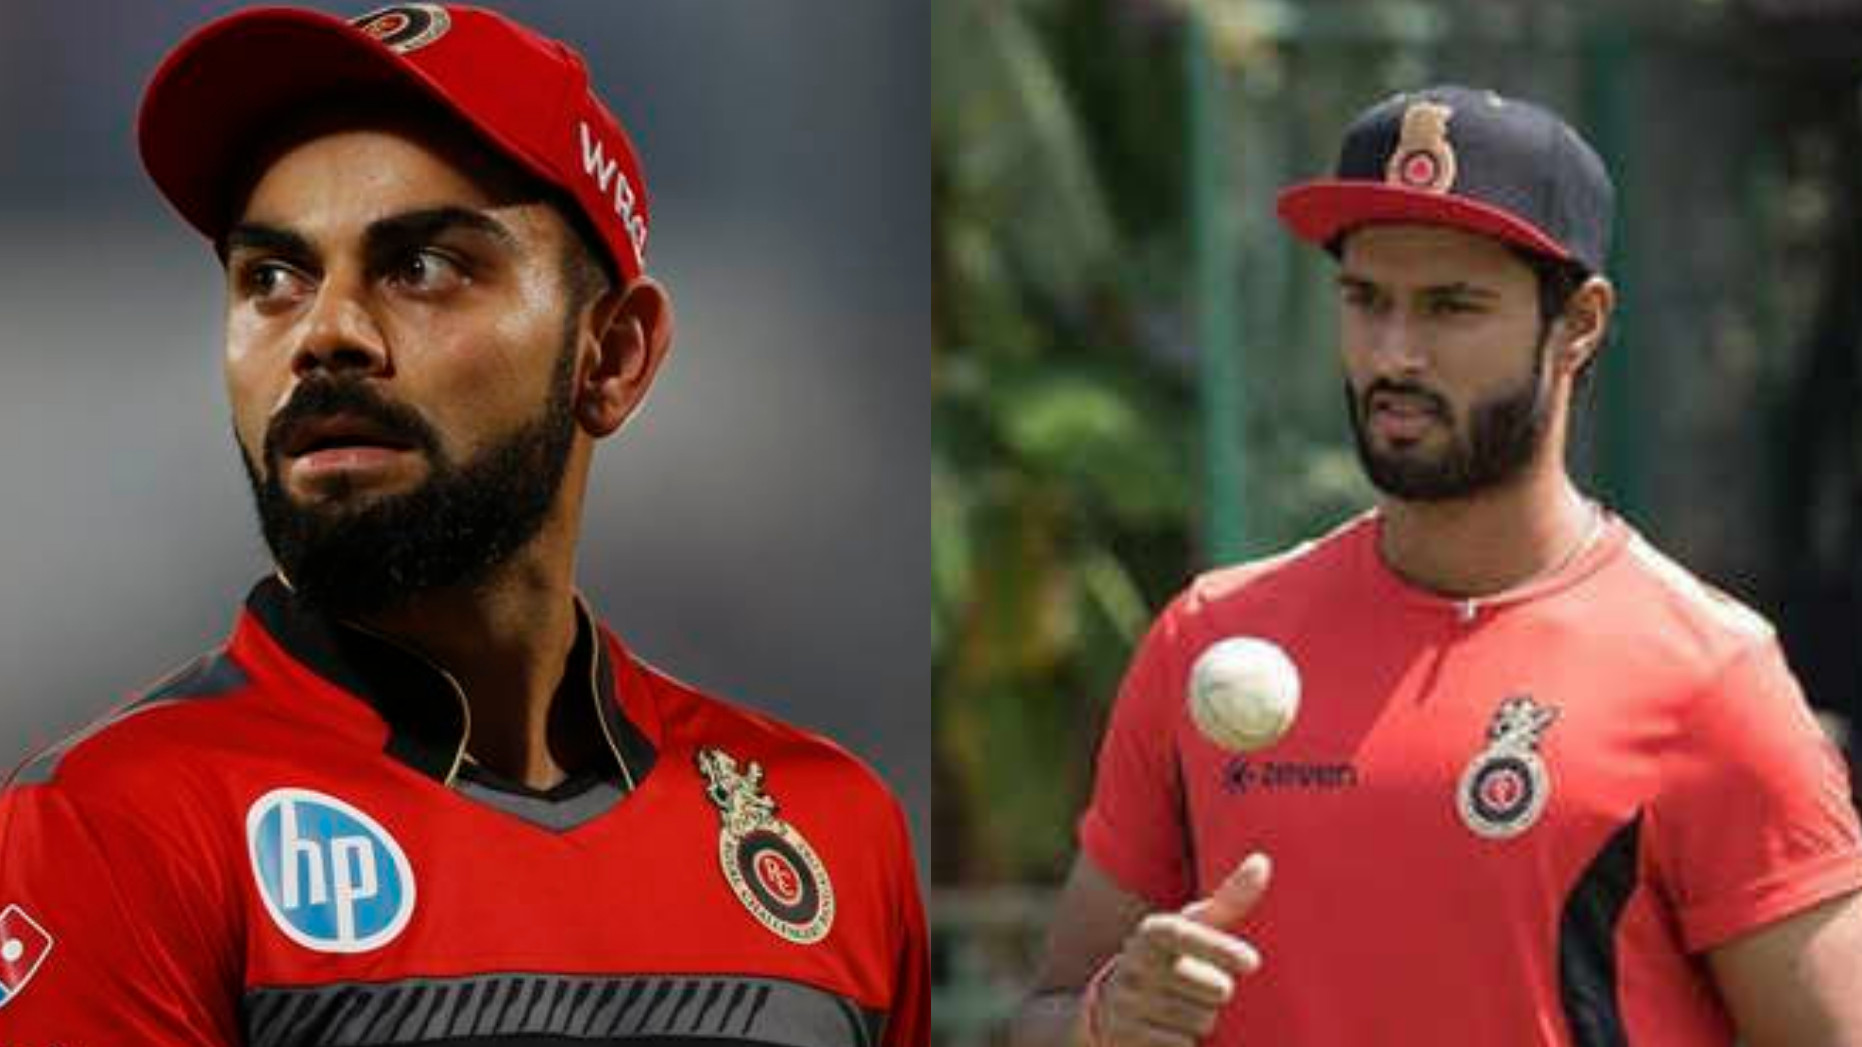 IPL 2019: All-rounder Shivam Dube speaks about his excitement of playing with Virat Kohli for RCB